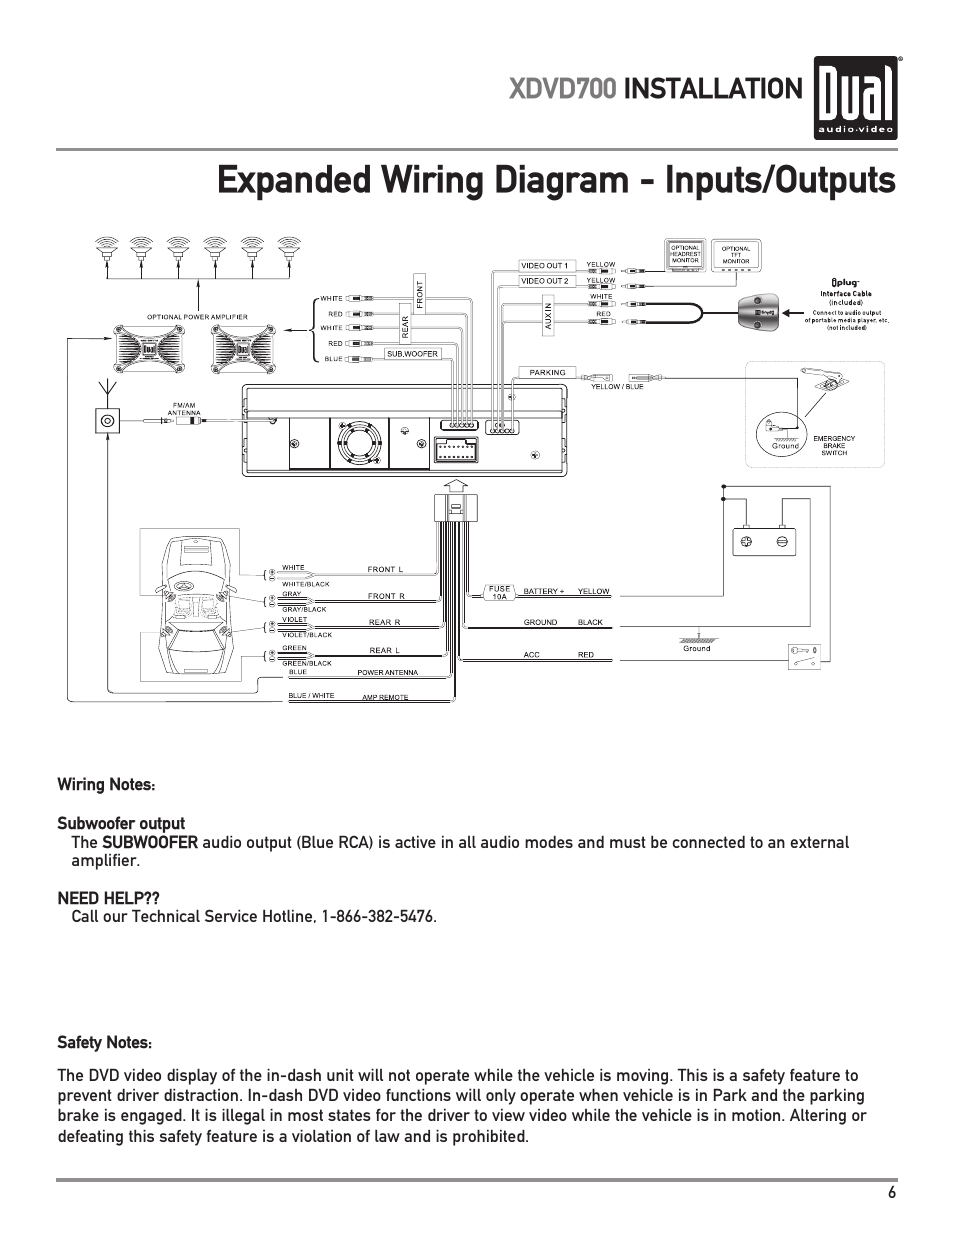 hight resolution of expanded wiring diagram inputs outputs xdvd700 installation dual xdvd700 user manual page 7 56